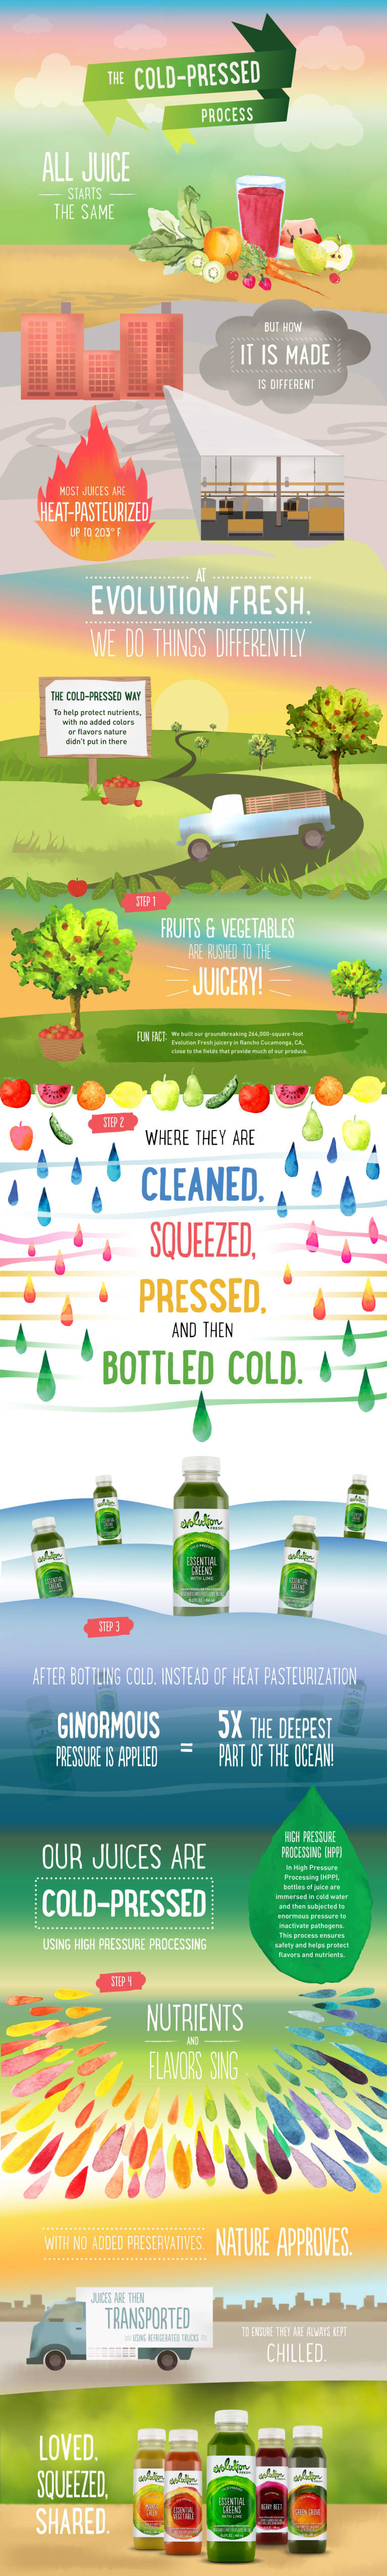 The Life Cycle Of A Cold-Pressed Juice (Infographic)